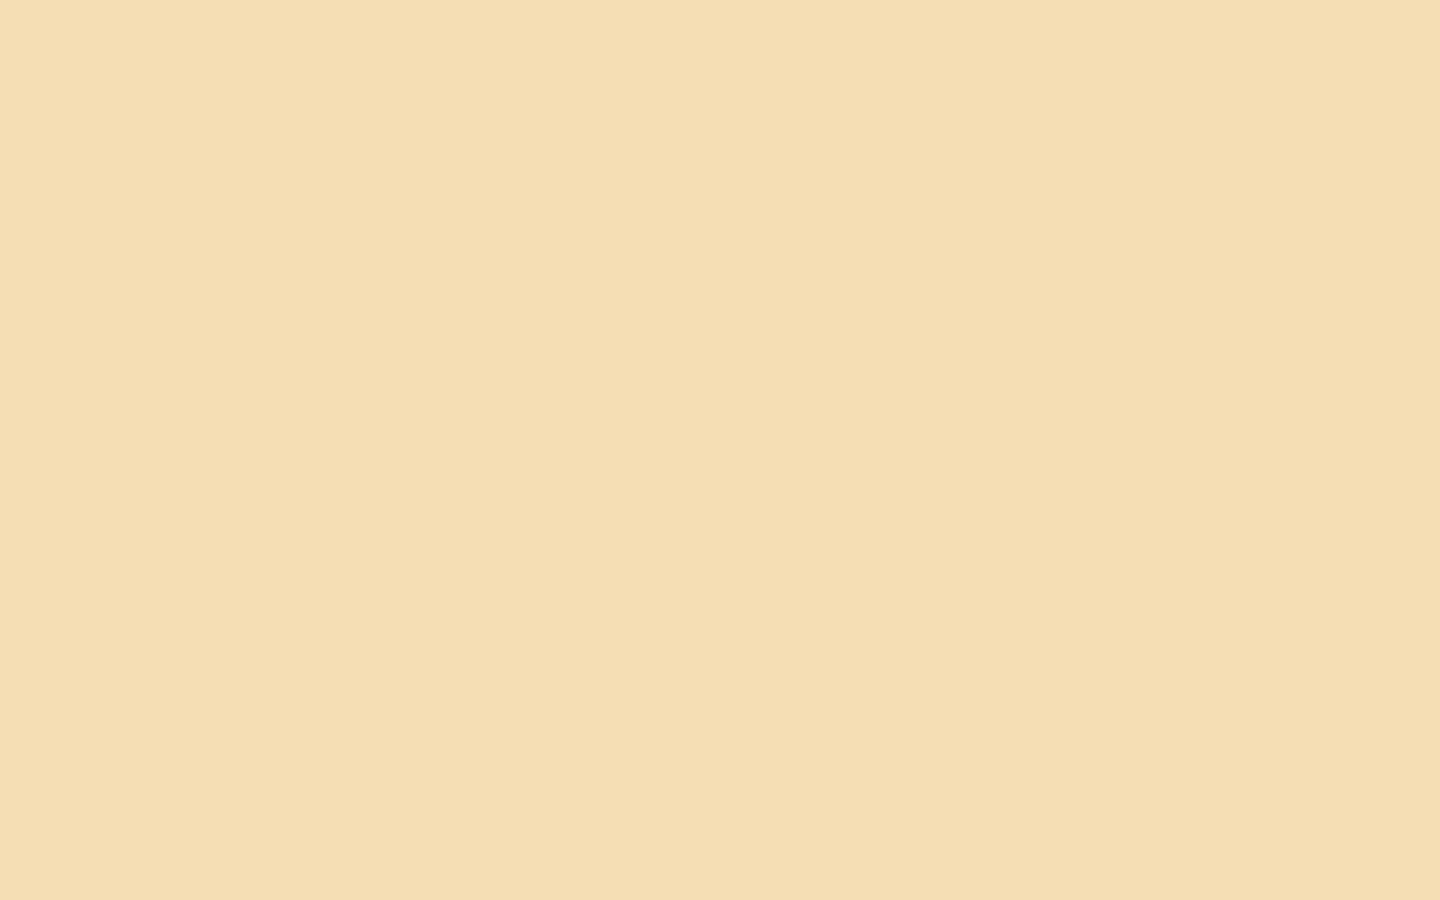 1440x900 Wheat Solid Color Background